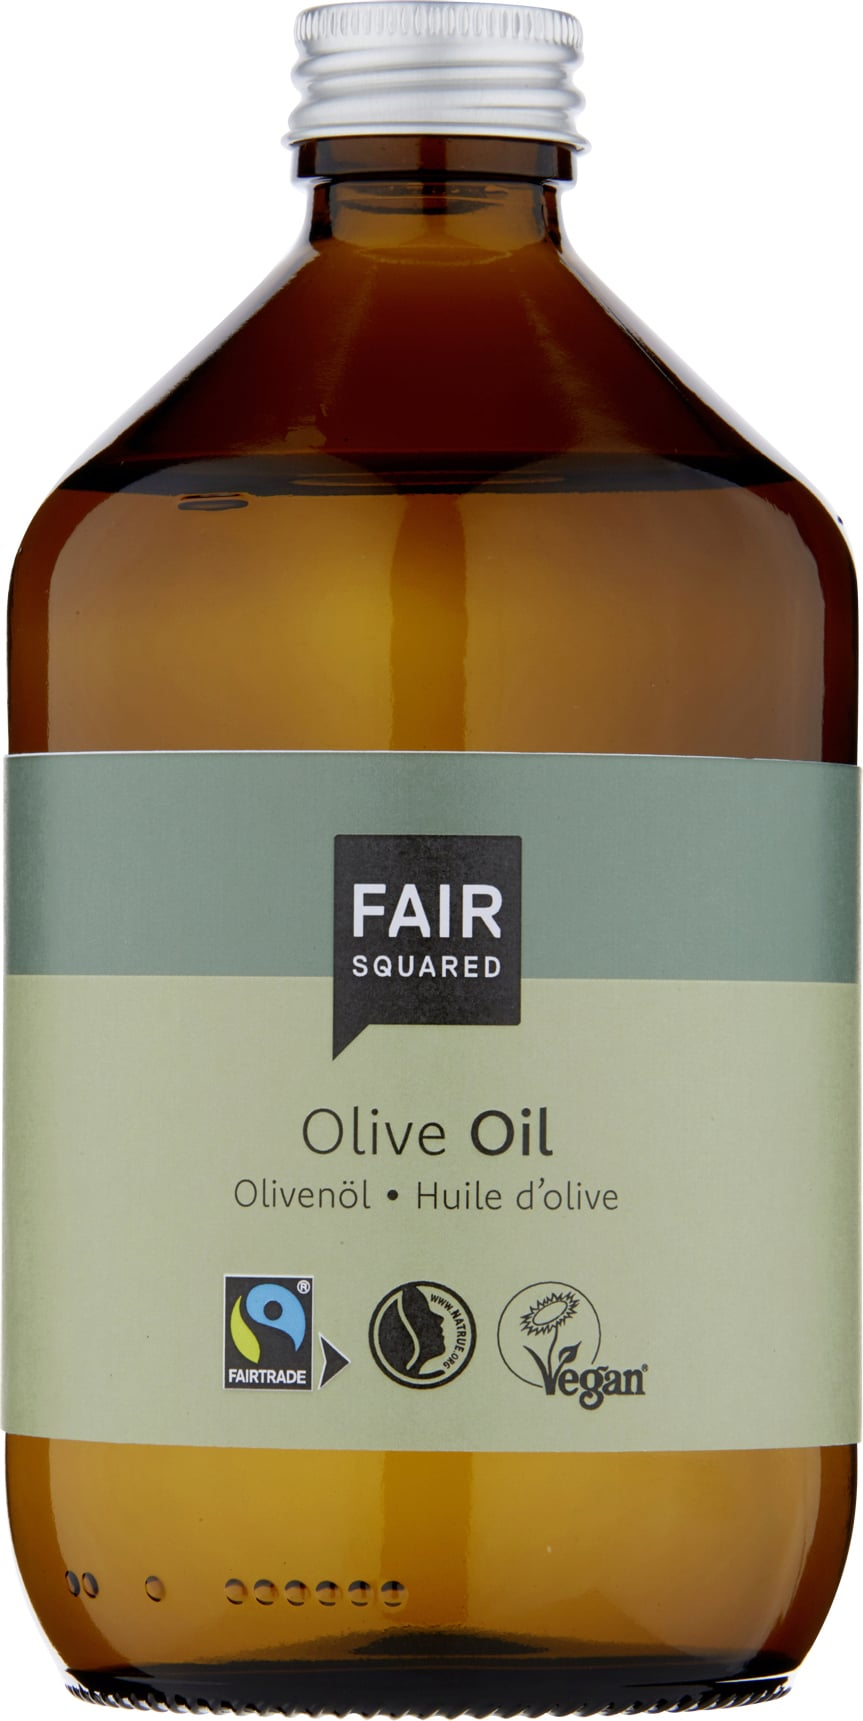 FAIR Squared Olive Oil - 500 ml von FAIR Squared